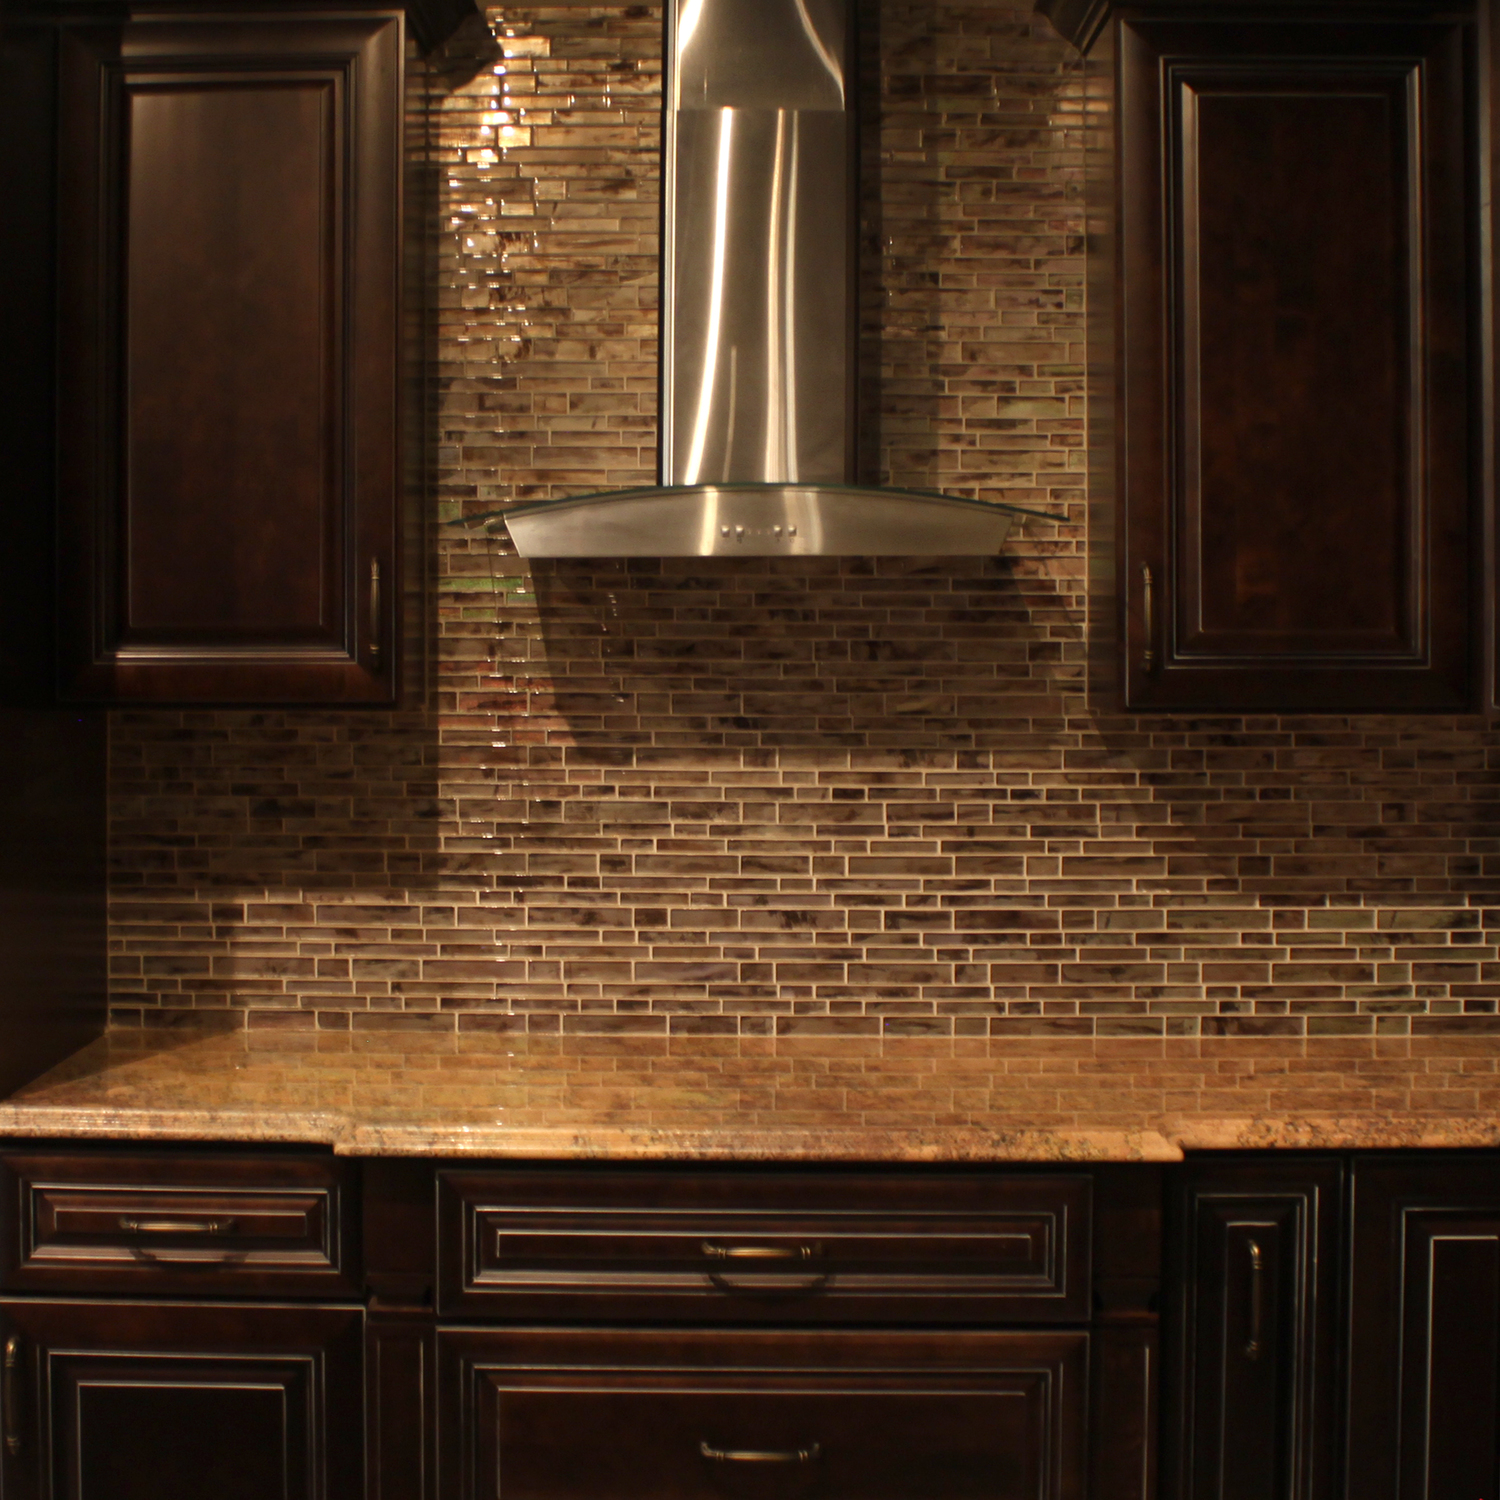 starles kitchen cabinets sinks and countertops rock counter